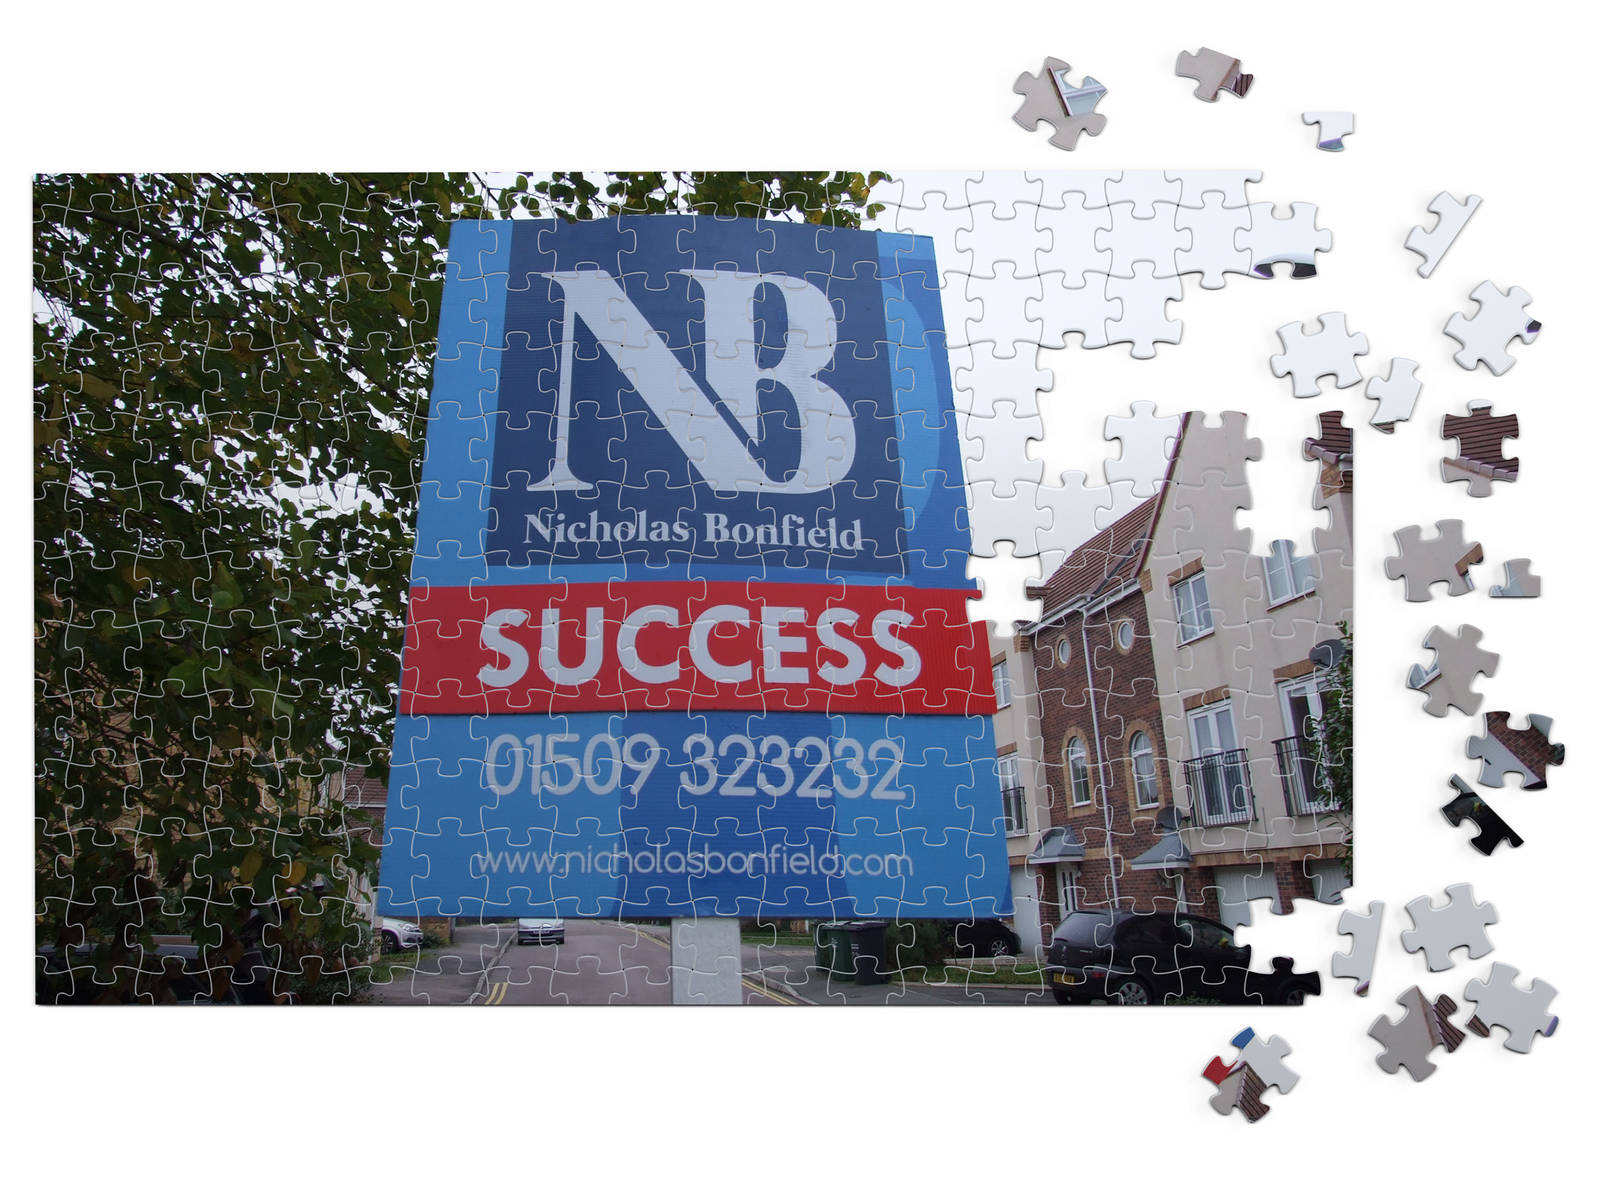 Nicholas-bonfield-puzzle-success